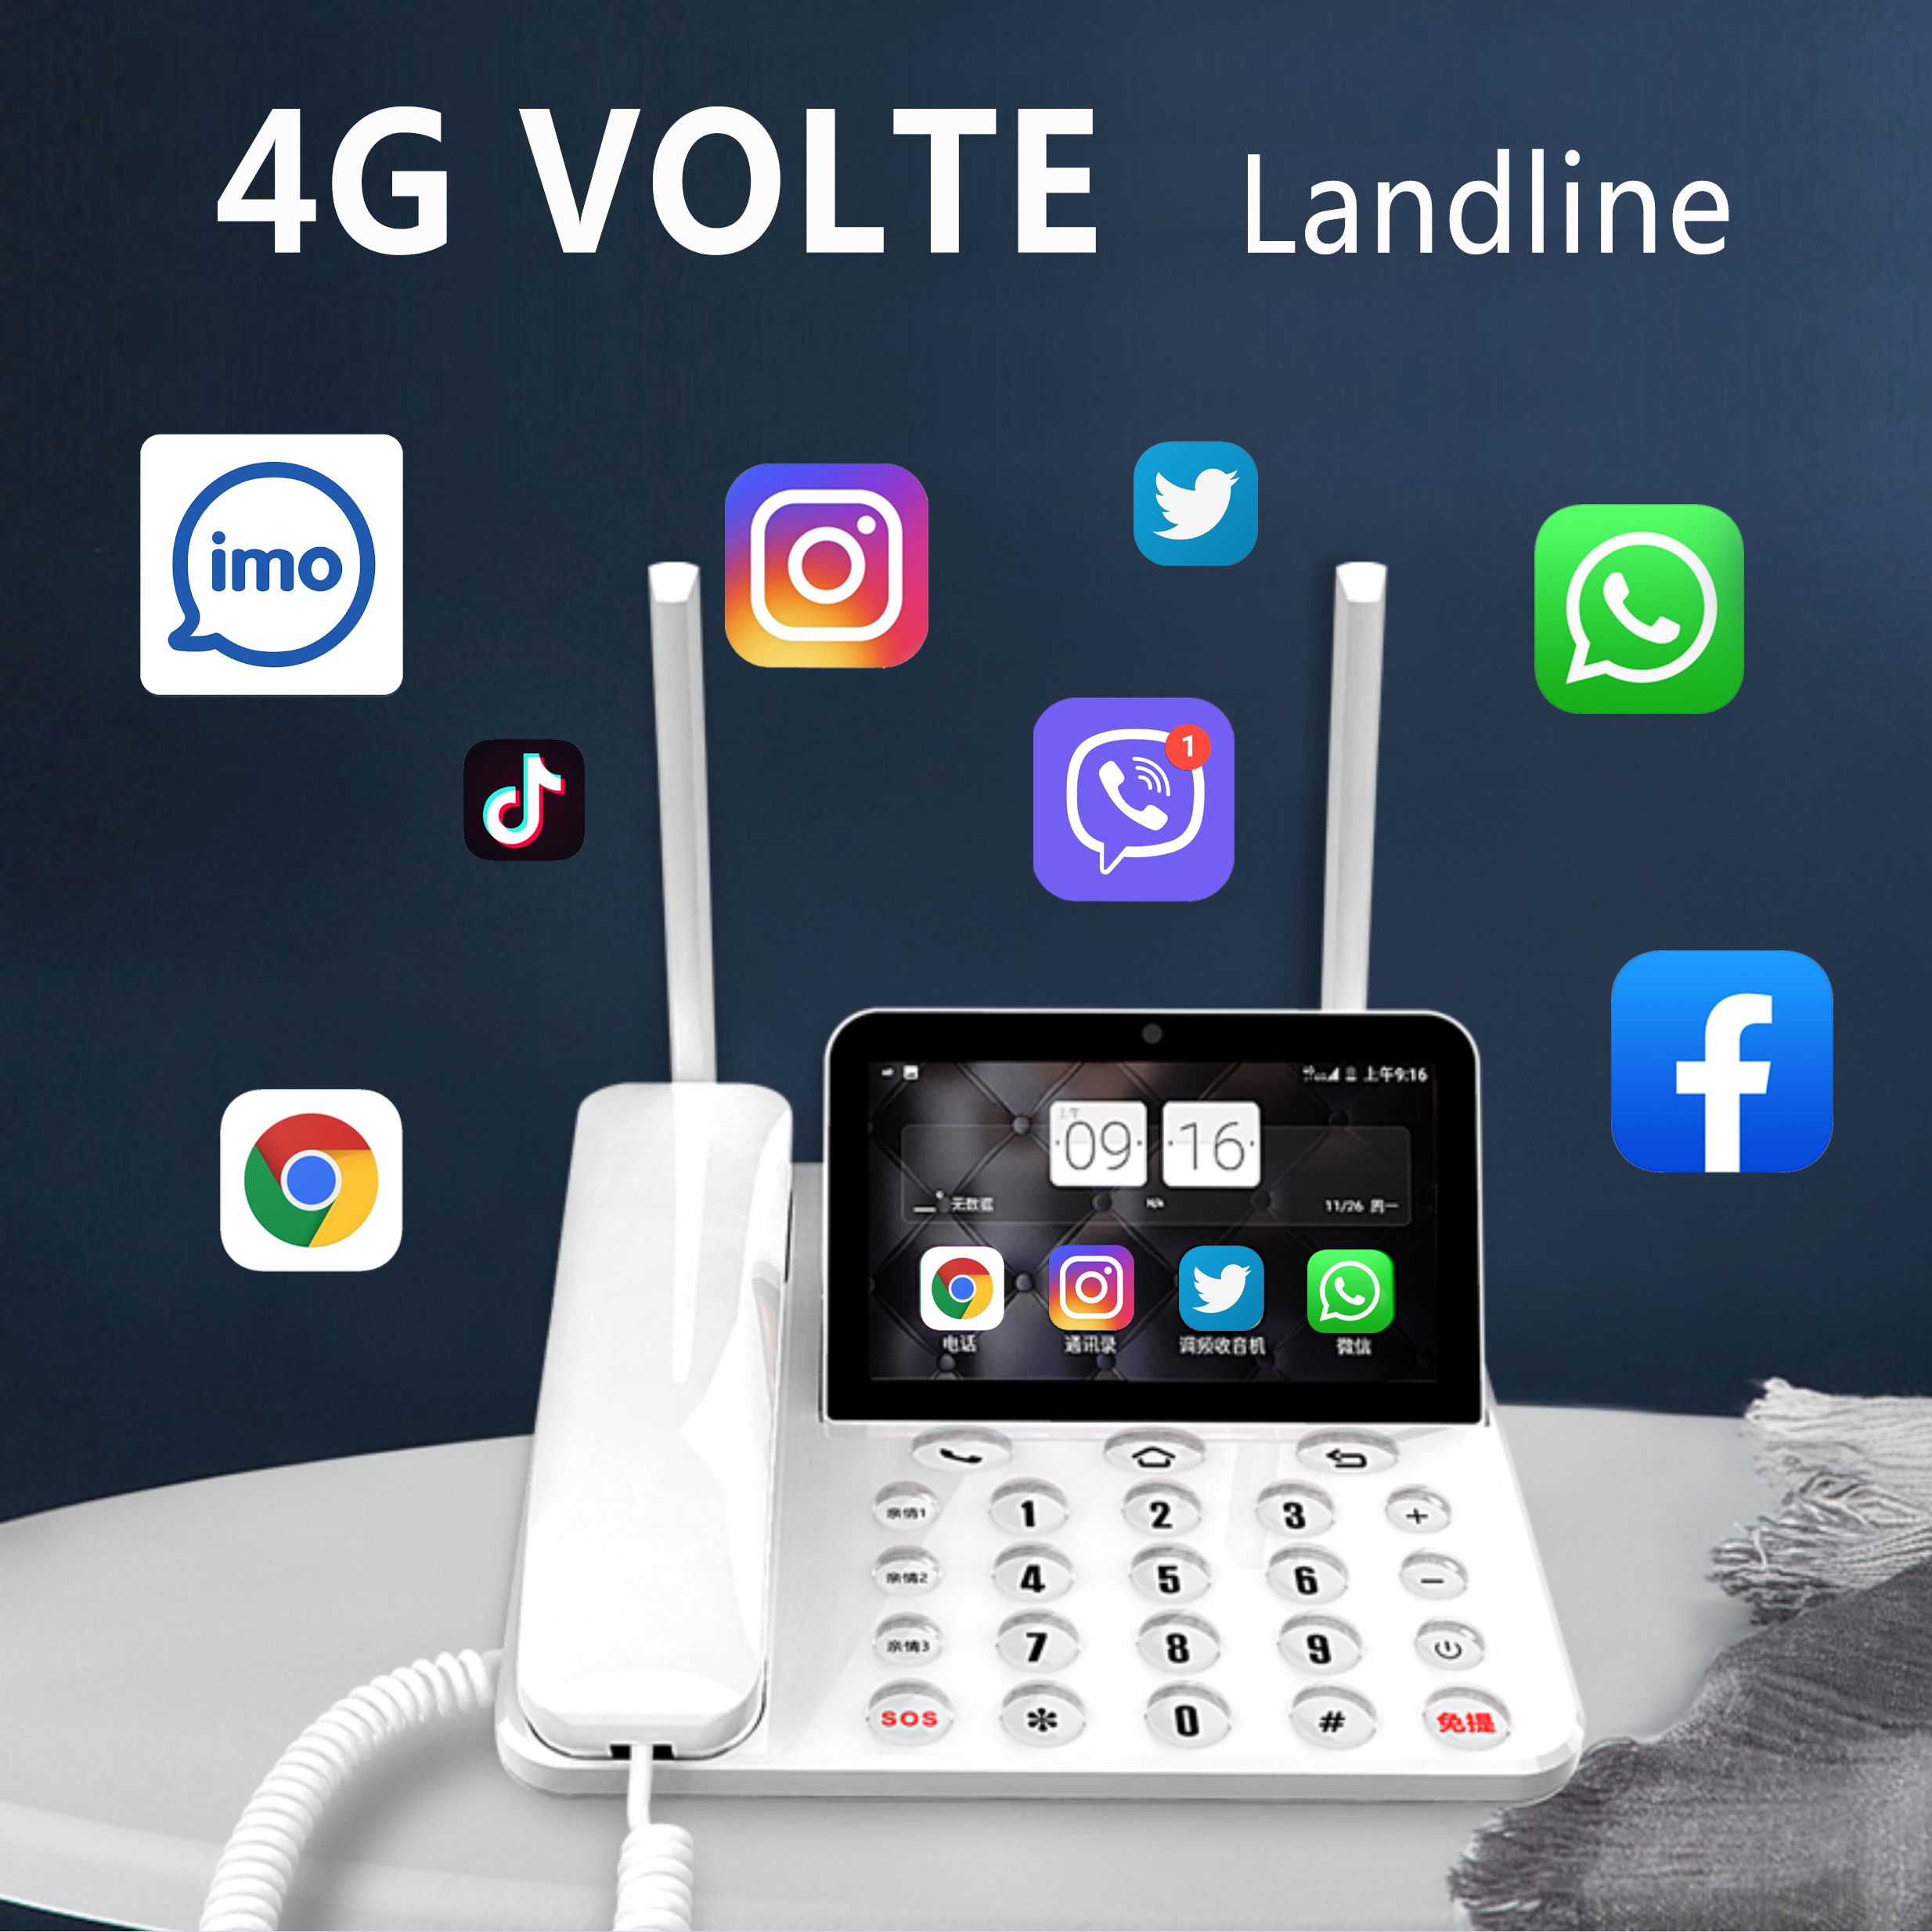 Smart 4G LTE Wireless Land Line Phone Android OS P1 Internation Language And Apps Remote Control Smart Phone